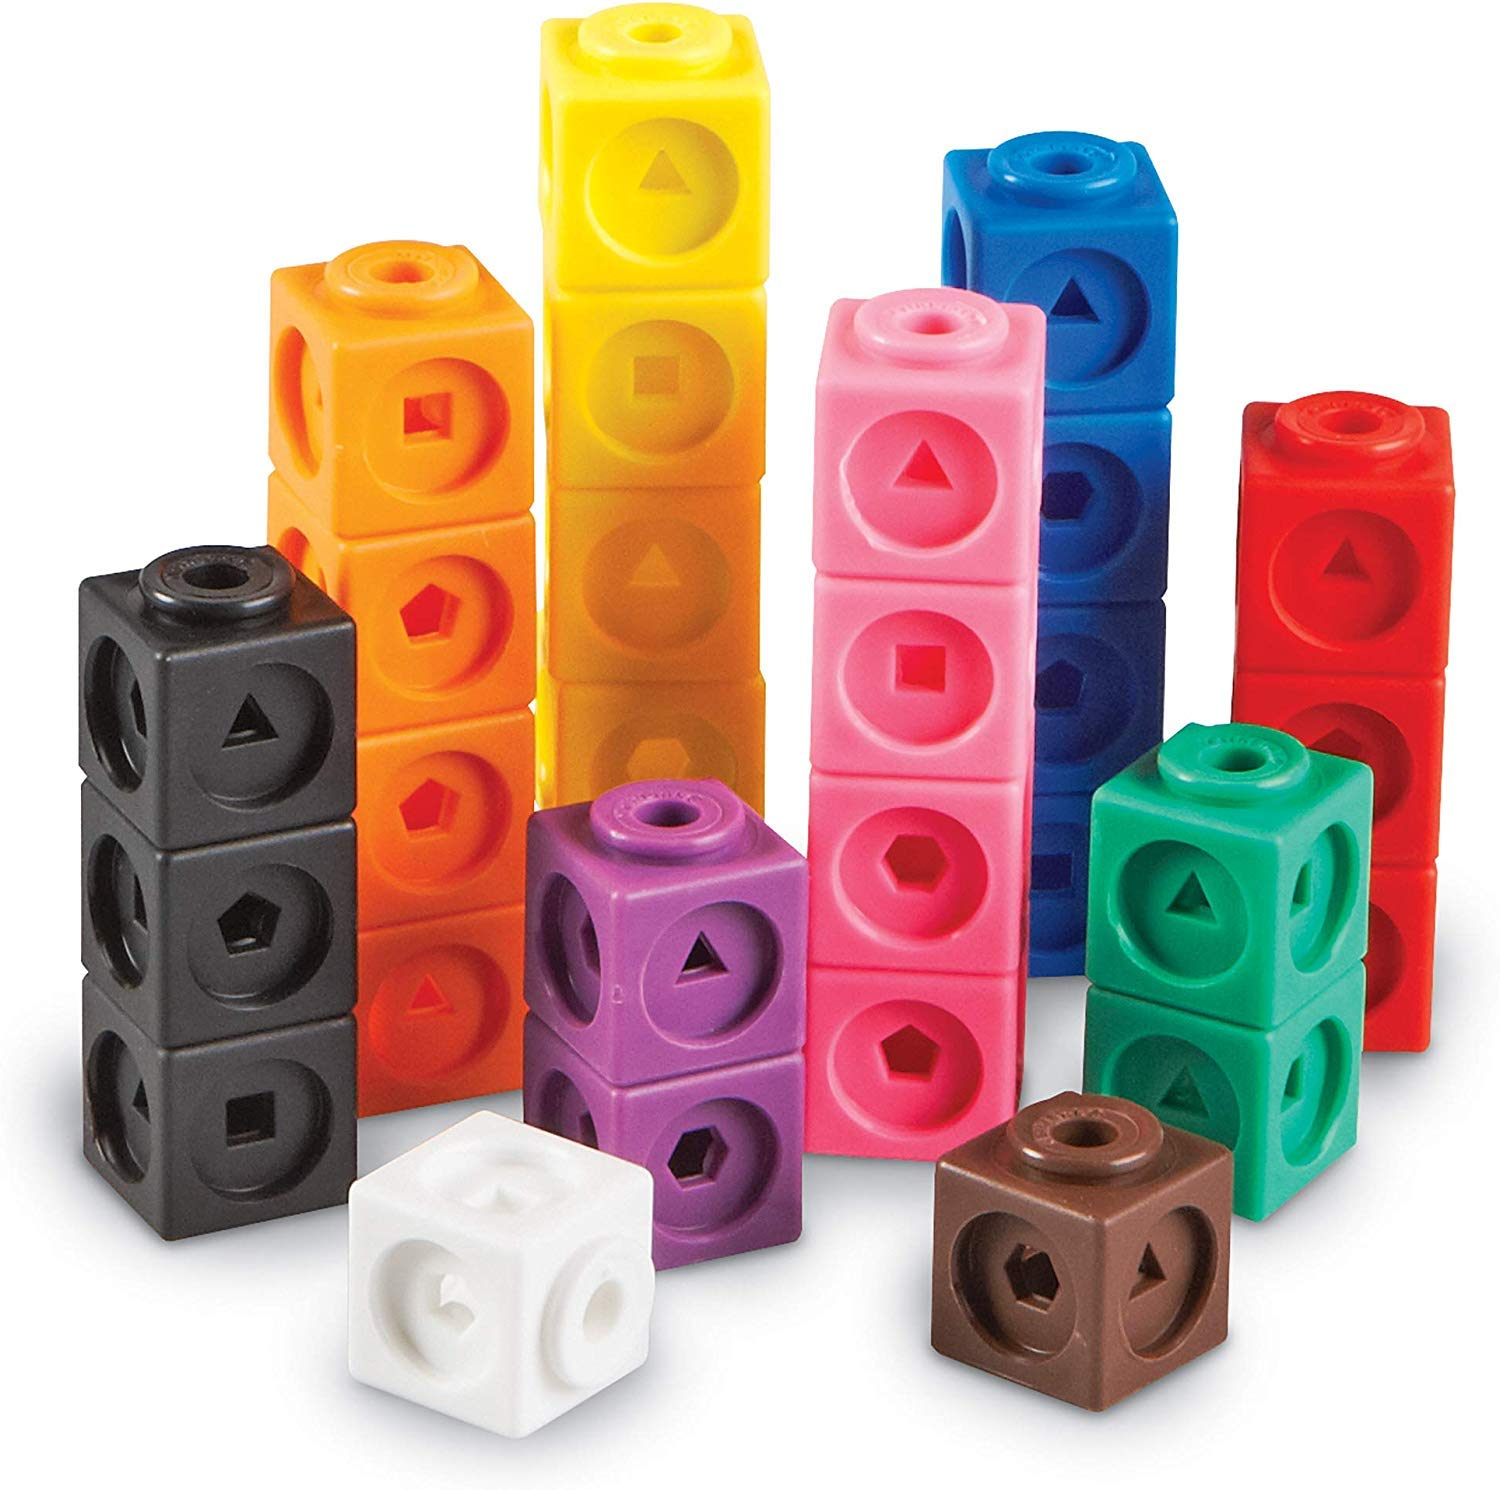 Learning Resources MathLink Cubes Homeschool Educational Counting Toy Math Cubes Linking Cubes Early Math Skills Math Manipulatives Set of 100 Cubes Ages 5+